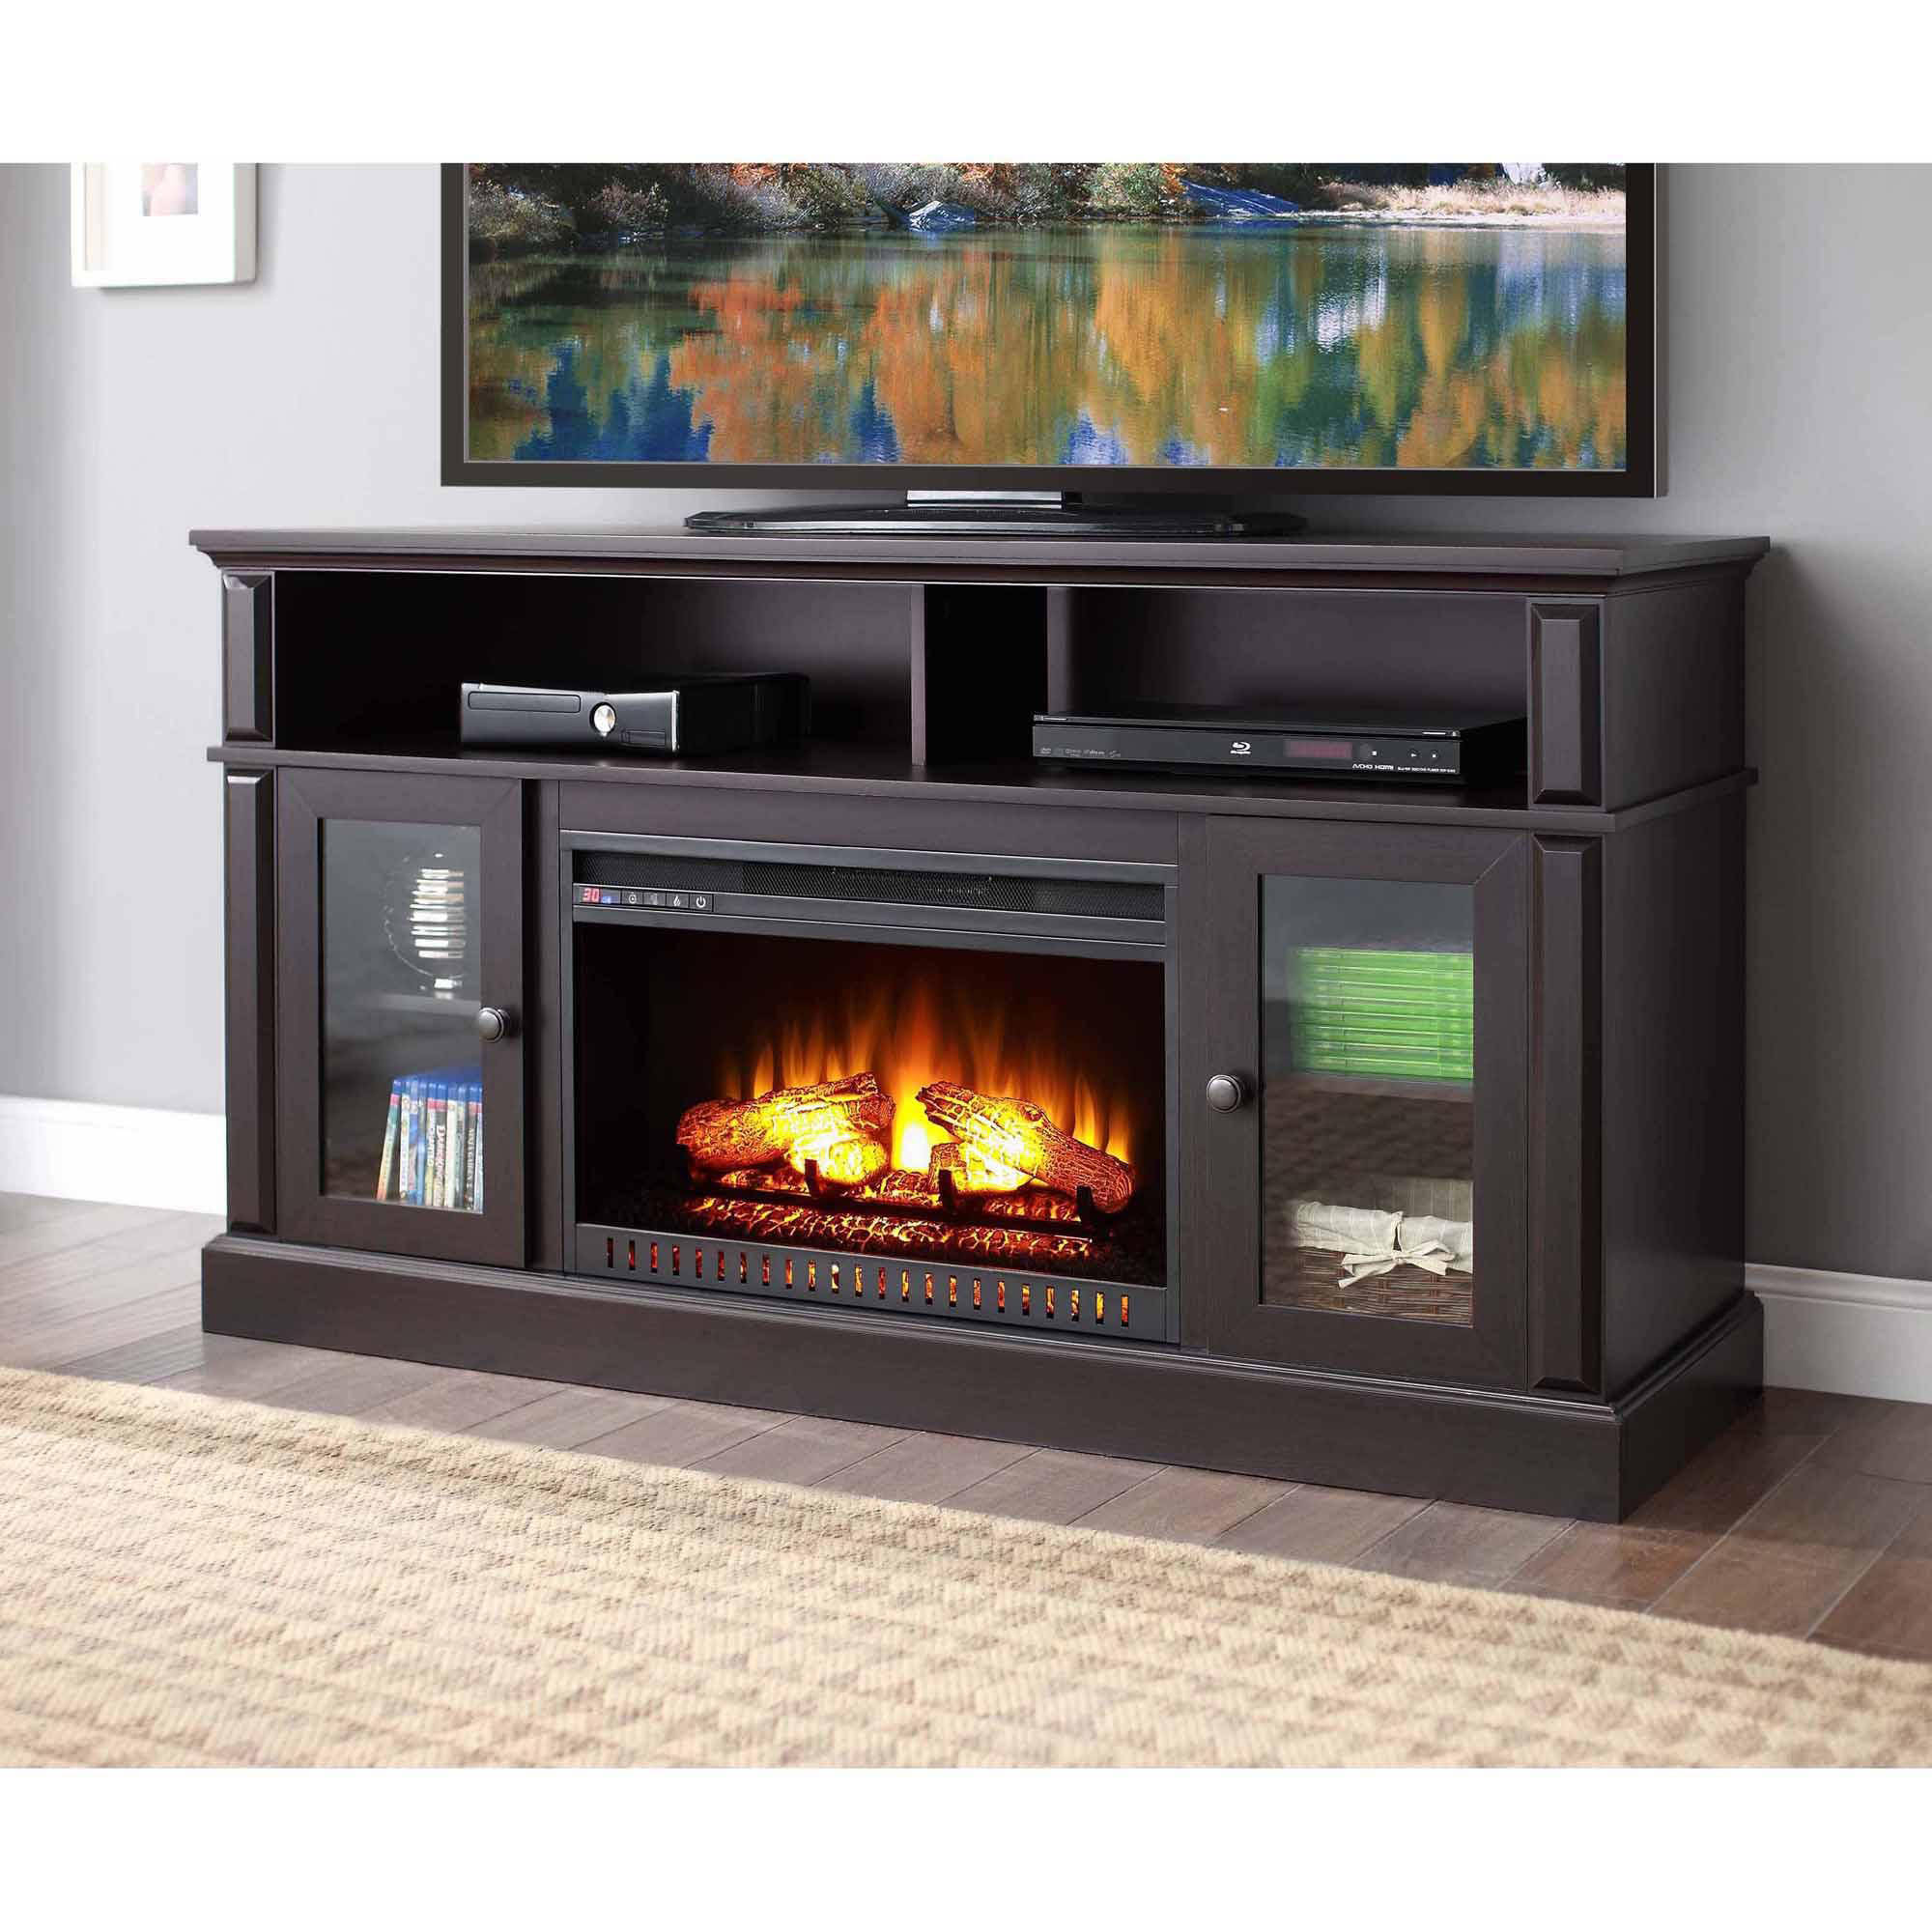 Whalen Barston Media Fireplace For TVu0027s Up To 70, Multiple Finishes